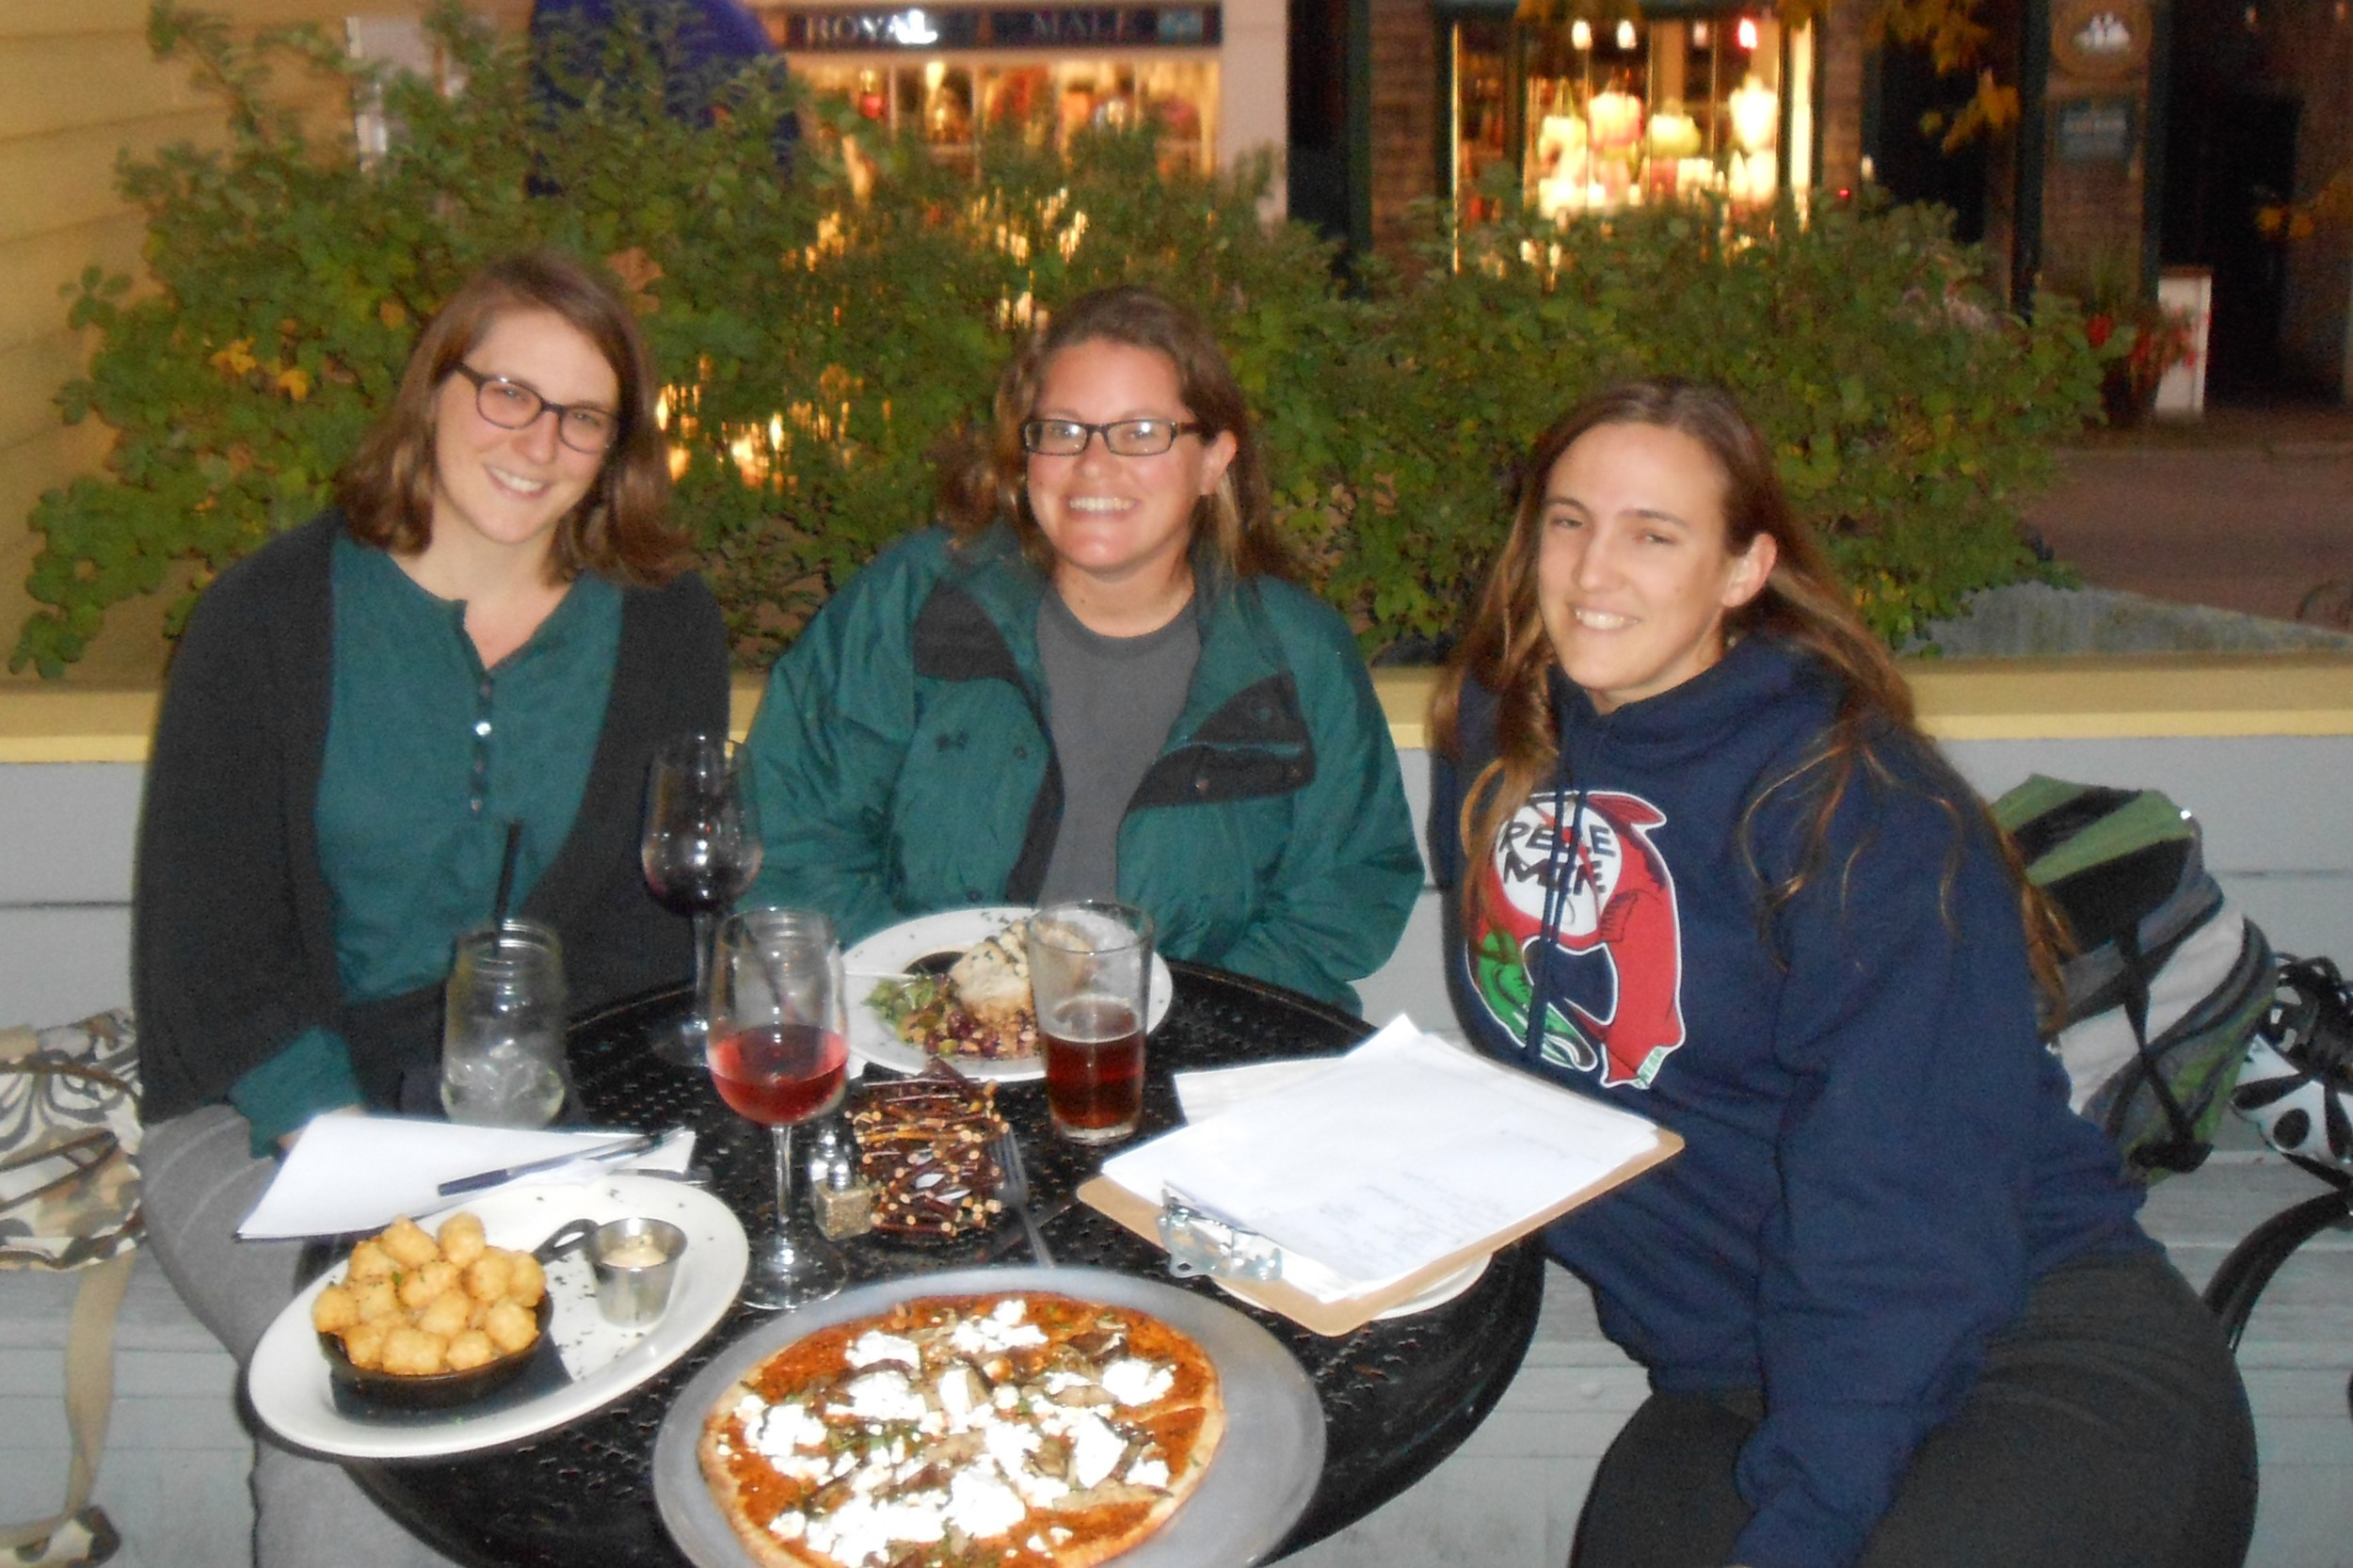 The coordinating committee: Caitlin, Stephanie, and Sarah